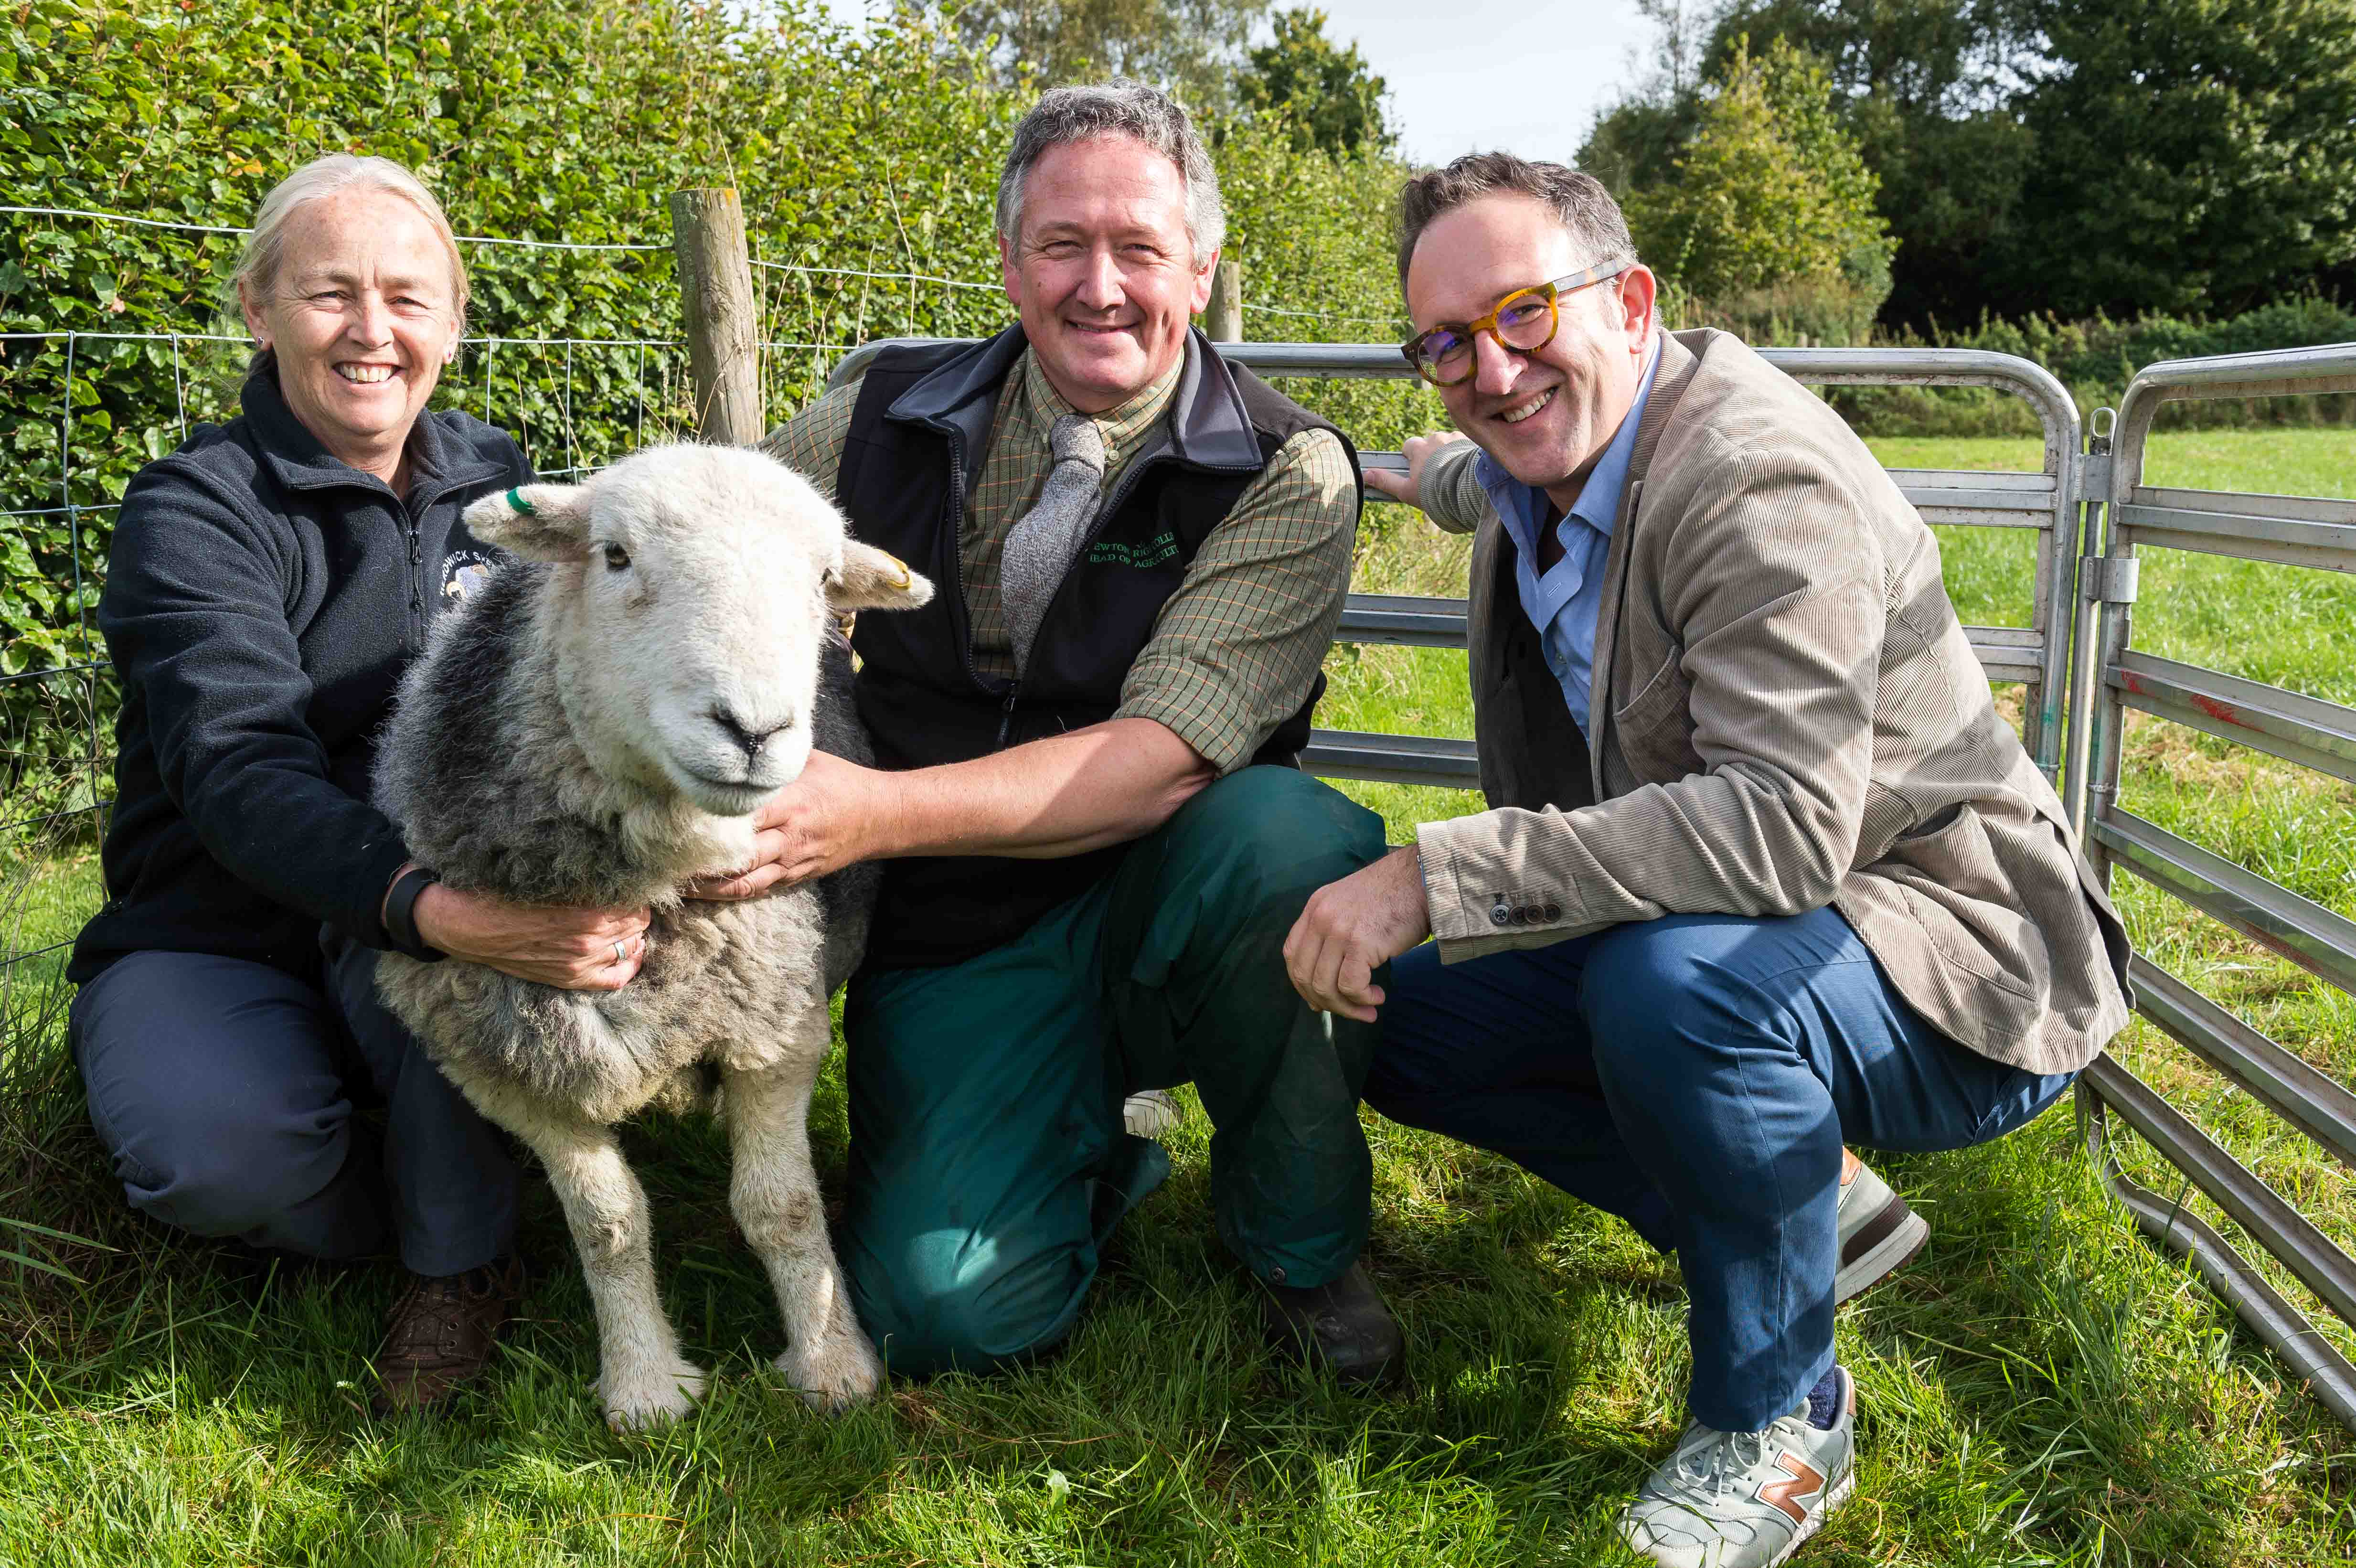 Initiative to help protect and preserve iconic Herdwick sheep breeds gets underway